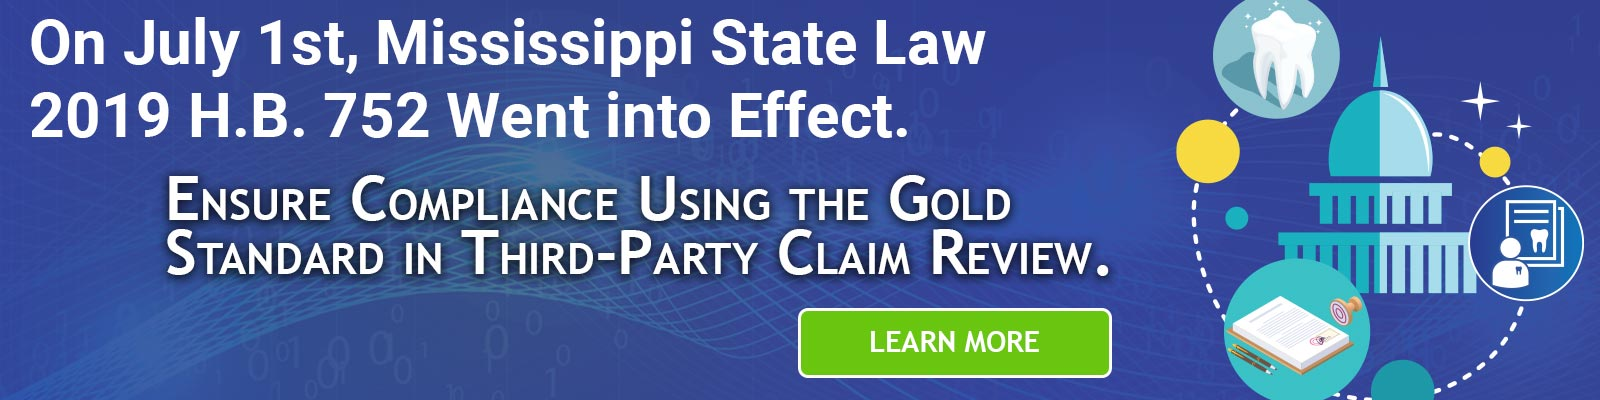 On July 1st, Mississippi State Law 2019 H.B. 752 Goes into Effect. Stay Compliant with the Gold Standard in Third-Party Claim Review.